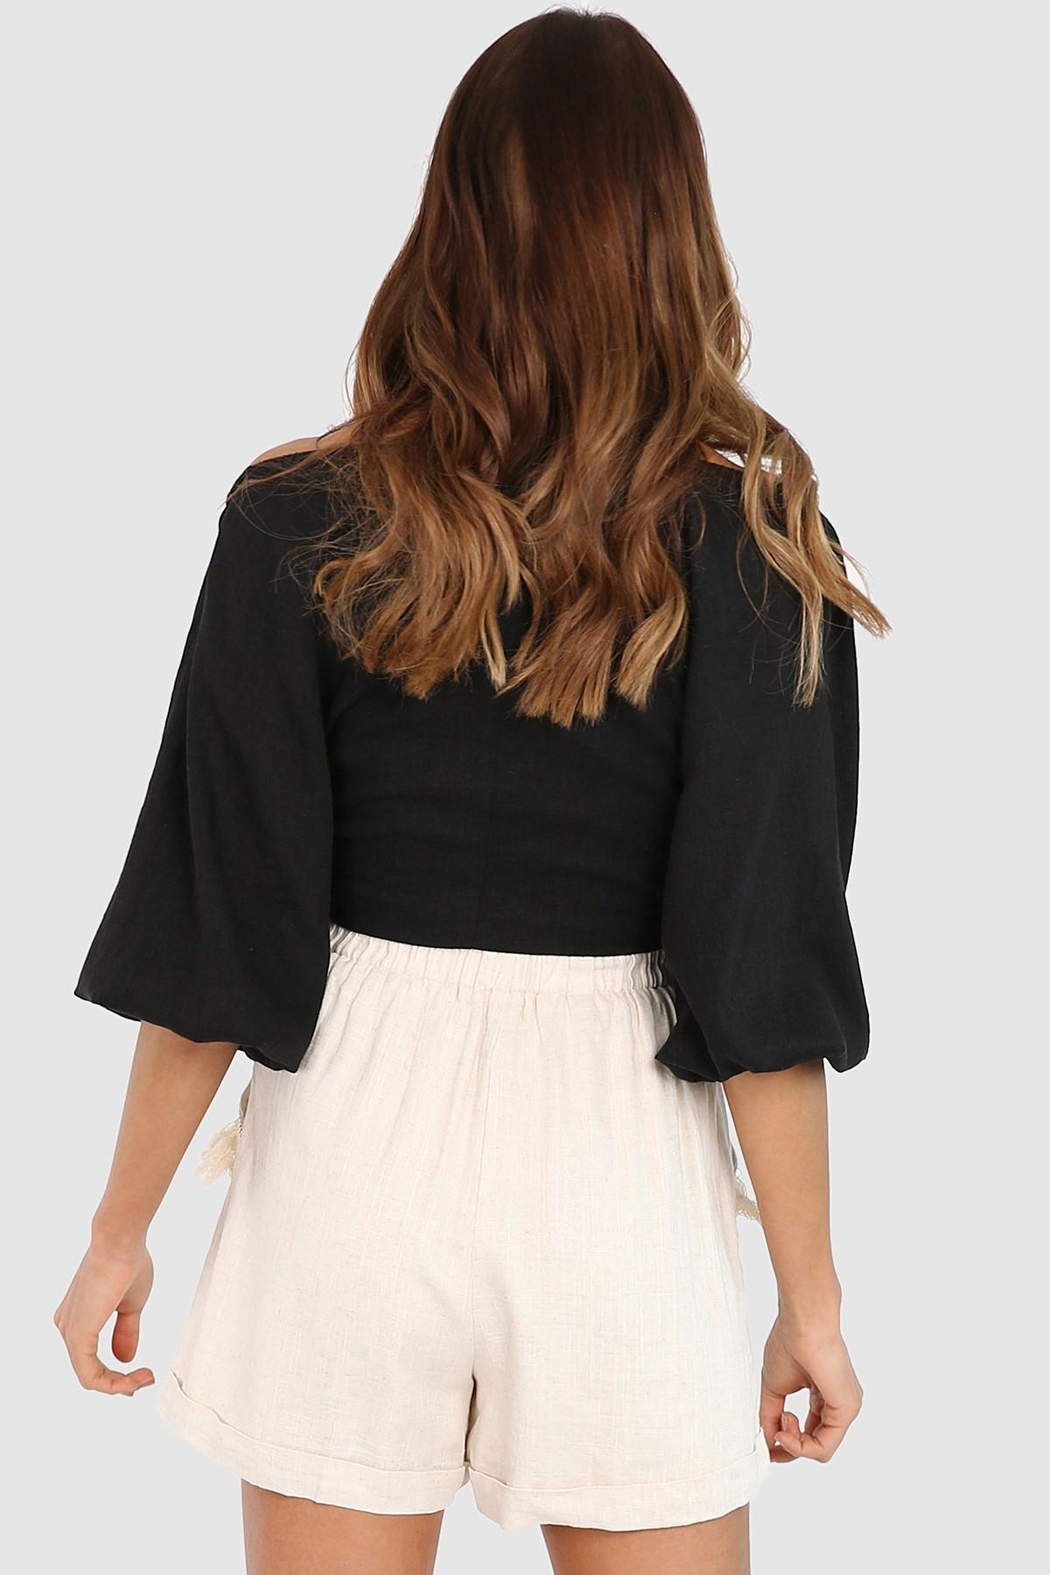 Lost in Lunar Miray Crop Top - Side Cropped Image